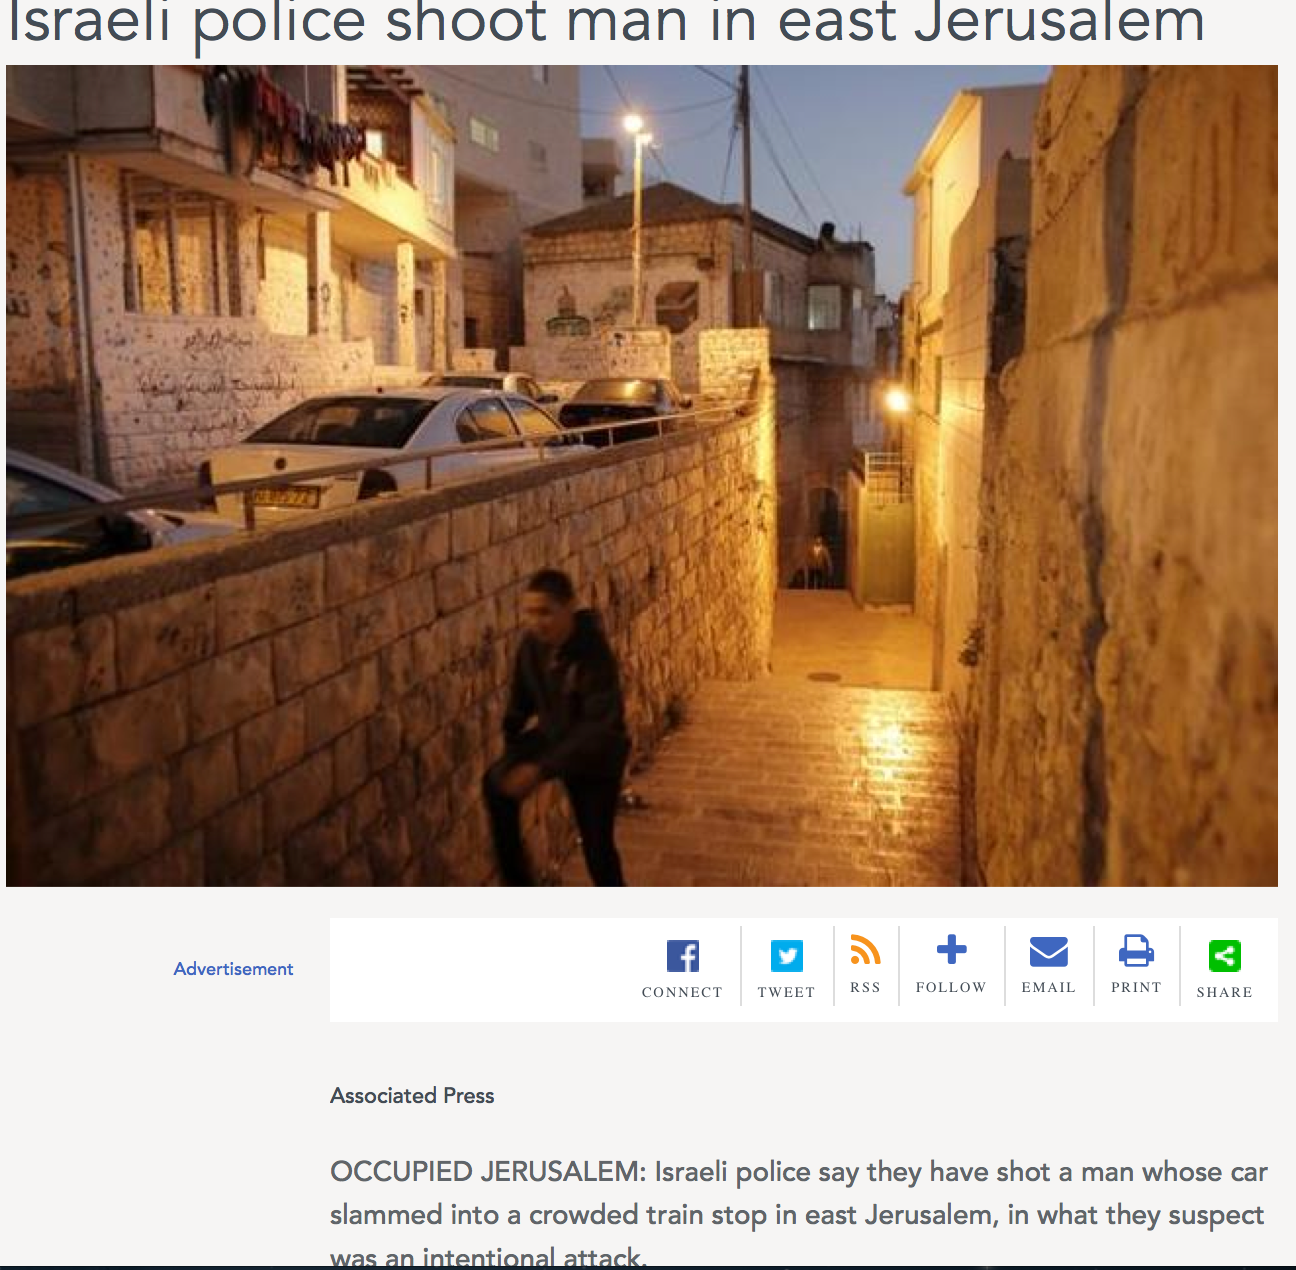 """AP's original headline as displayed by a Lebanese newspaper, which cites """"Occupied Jerusalem"""" as the location of the terror attack story. Image: The Daily Star"""